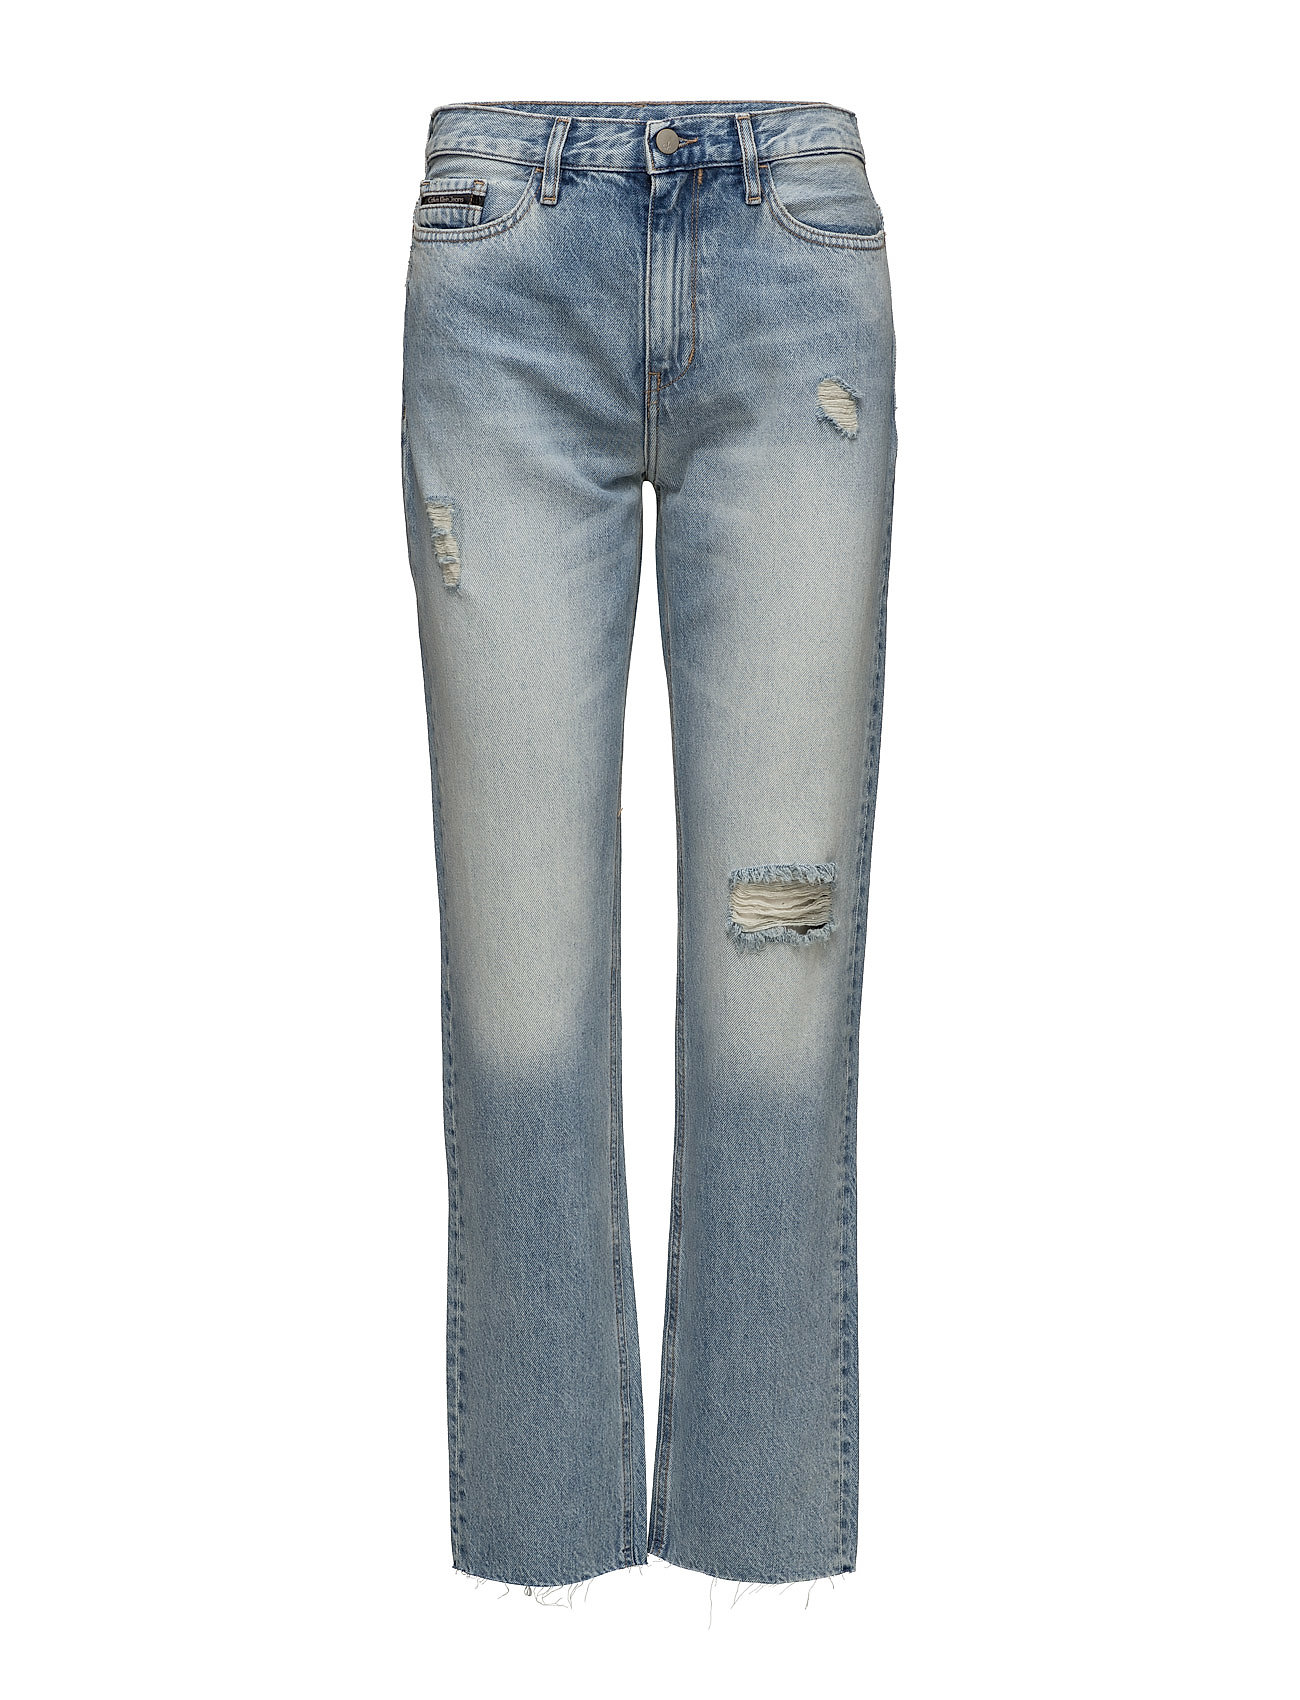 Jeans im Sale - Hr Straight Ankle Ra